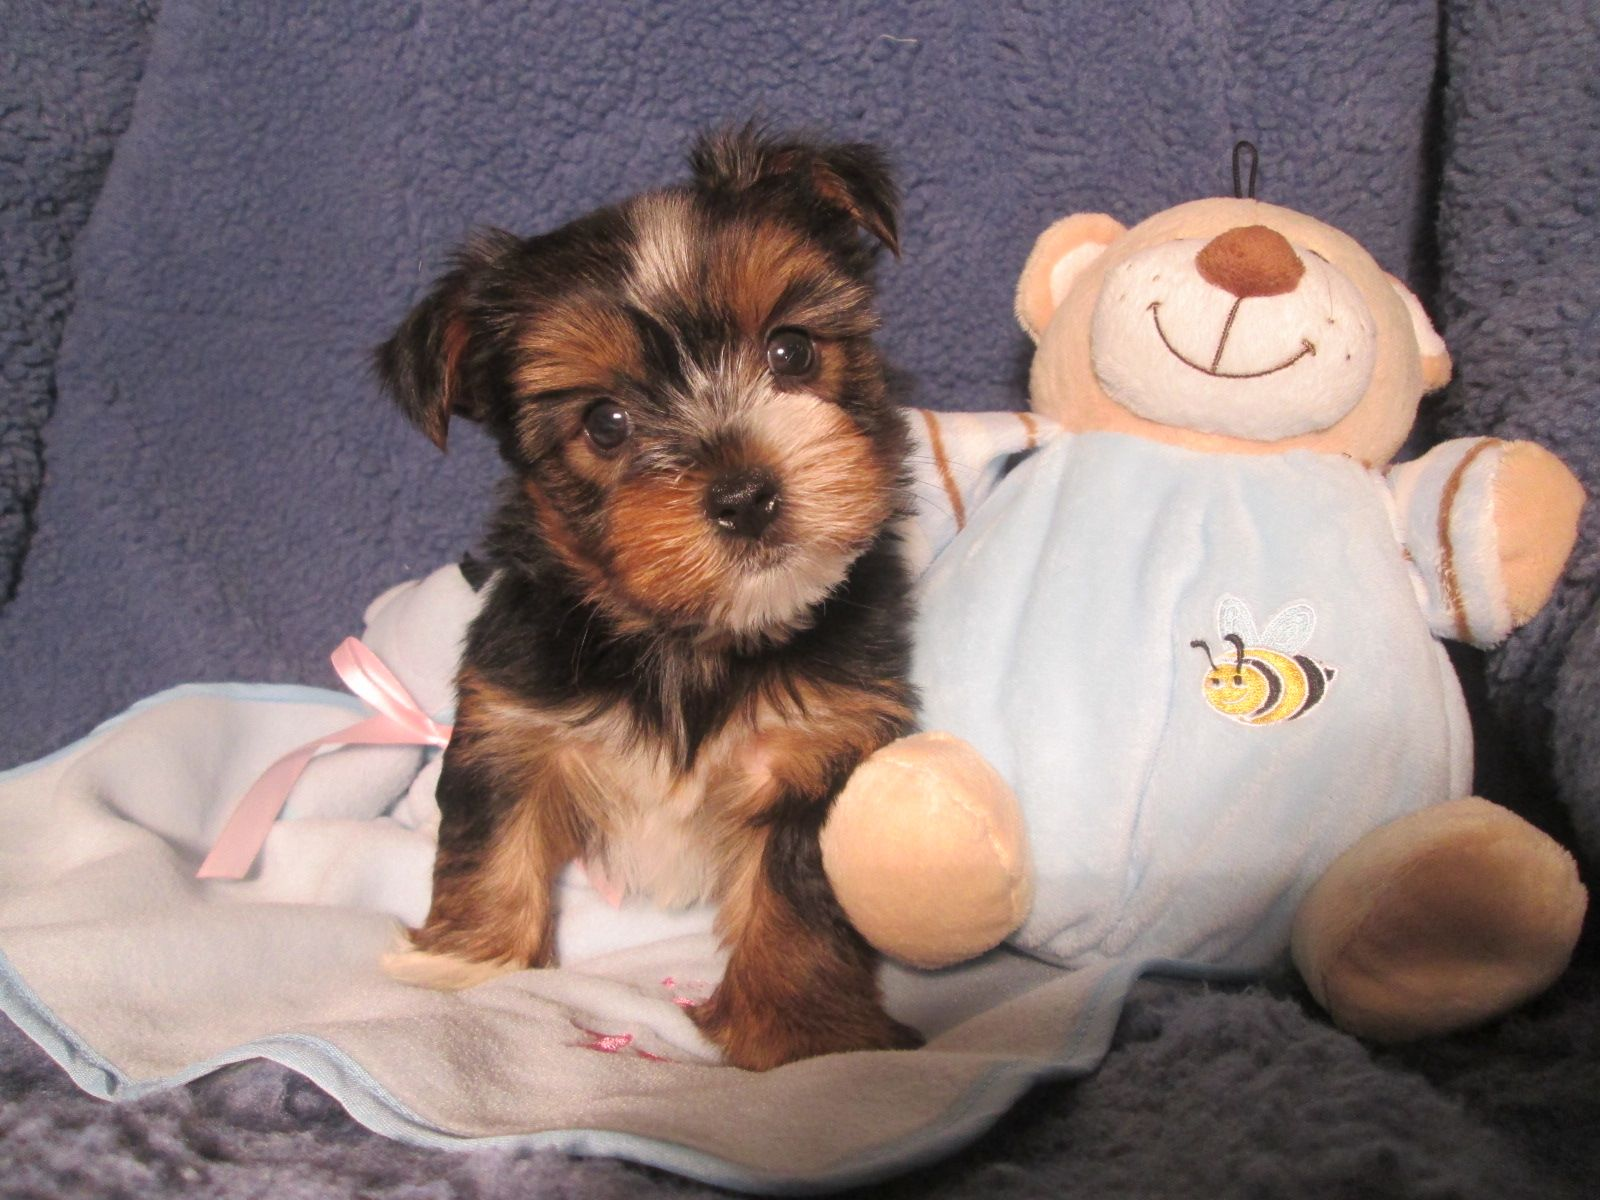 Cuddly Yorkiepoo Puppies Available Yorkie X Poodle 8 12 Weeks Of Age Permanent Shots And Wormings Completed Along With Microchipping We Offer Extens